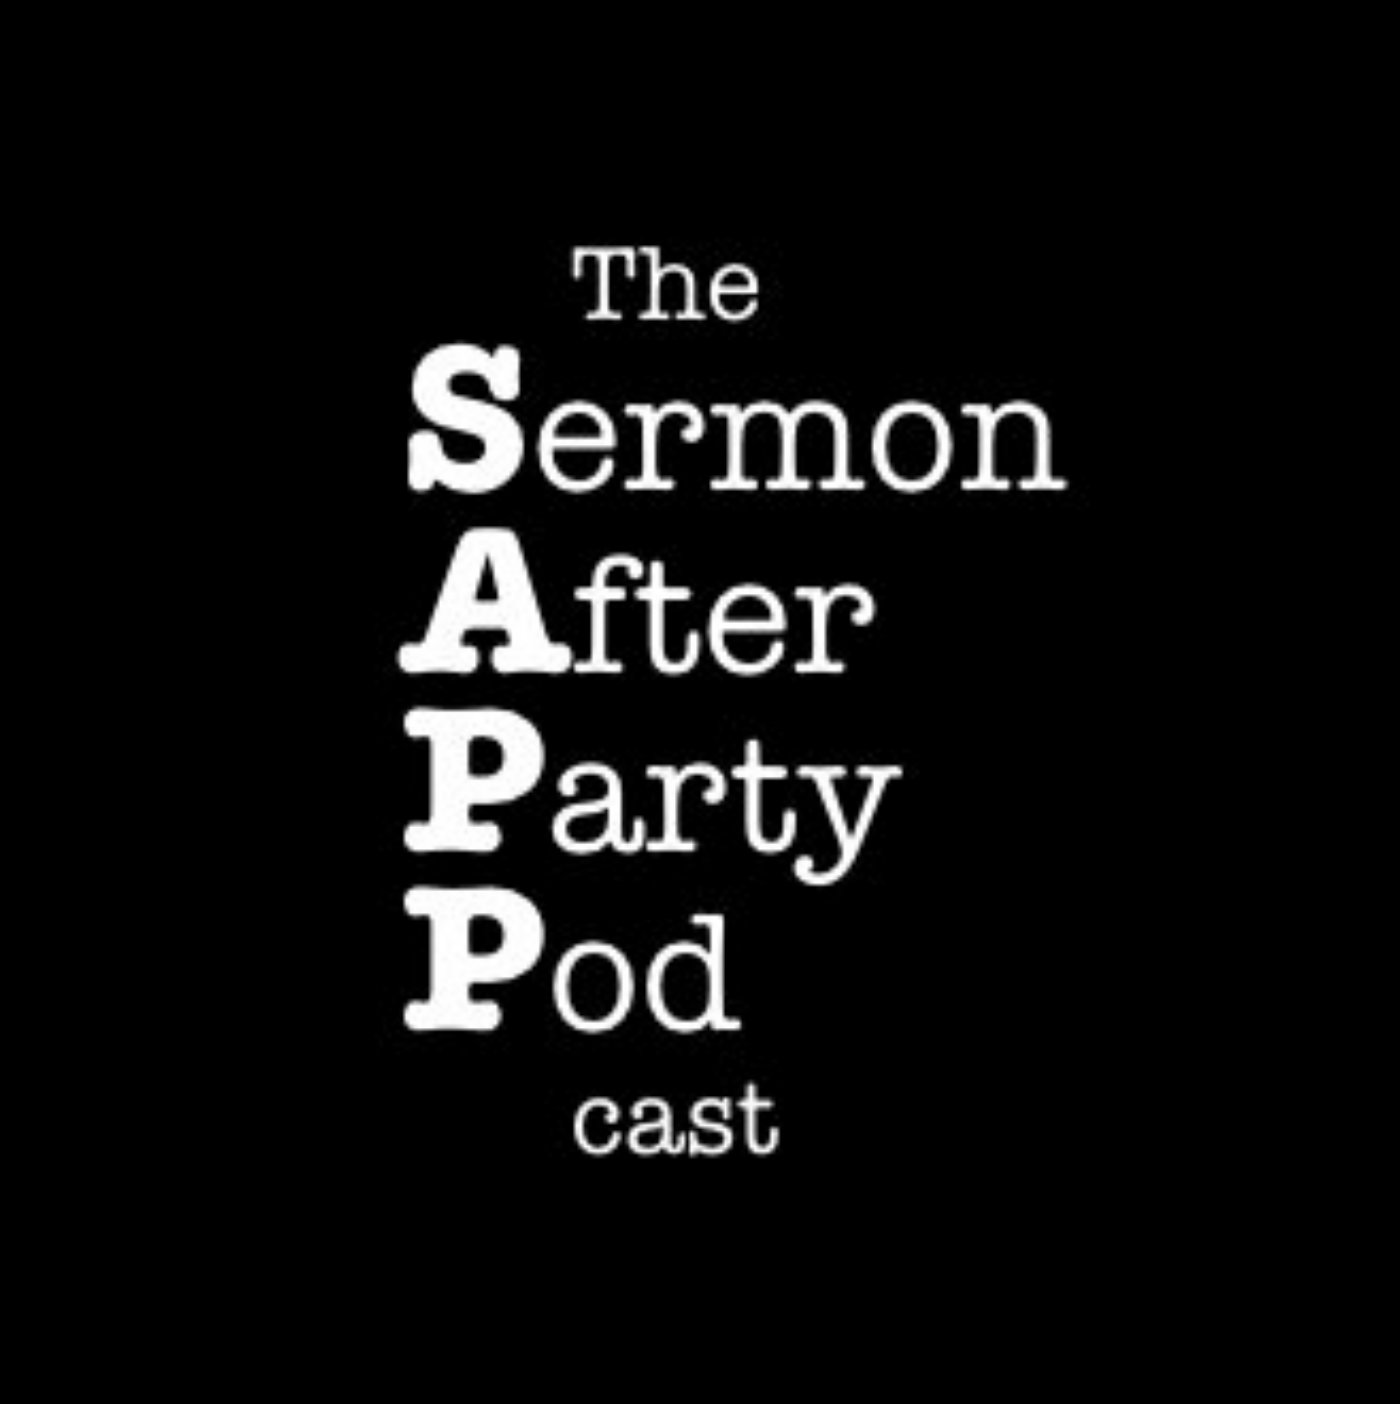 The Sermon After Party Podcast